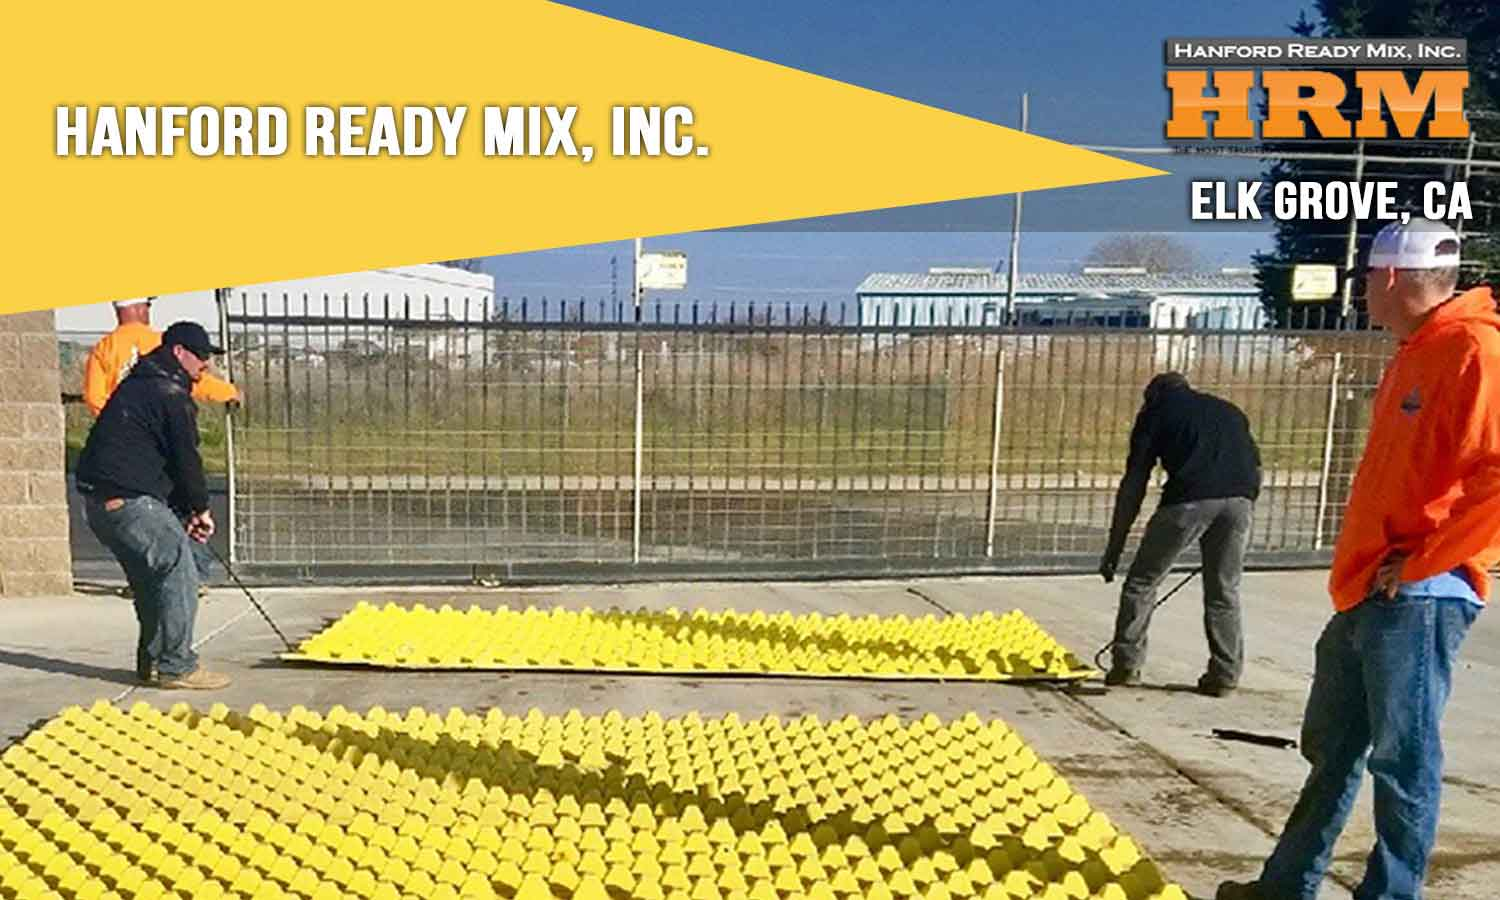 FODS_ConstructionEntrance_ConstructionExit_trackingPads_temporaryConstructionEntrance_temporaryConstructionEntrance_riprap_RockConstructionEntrance_hanfordReadyMix_.jpg